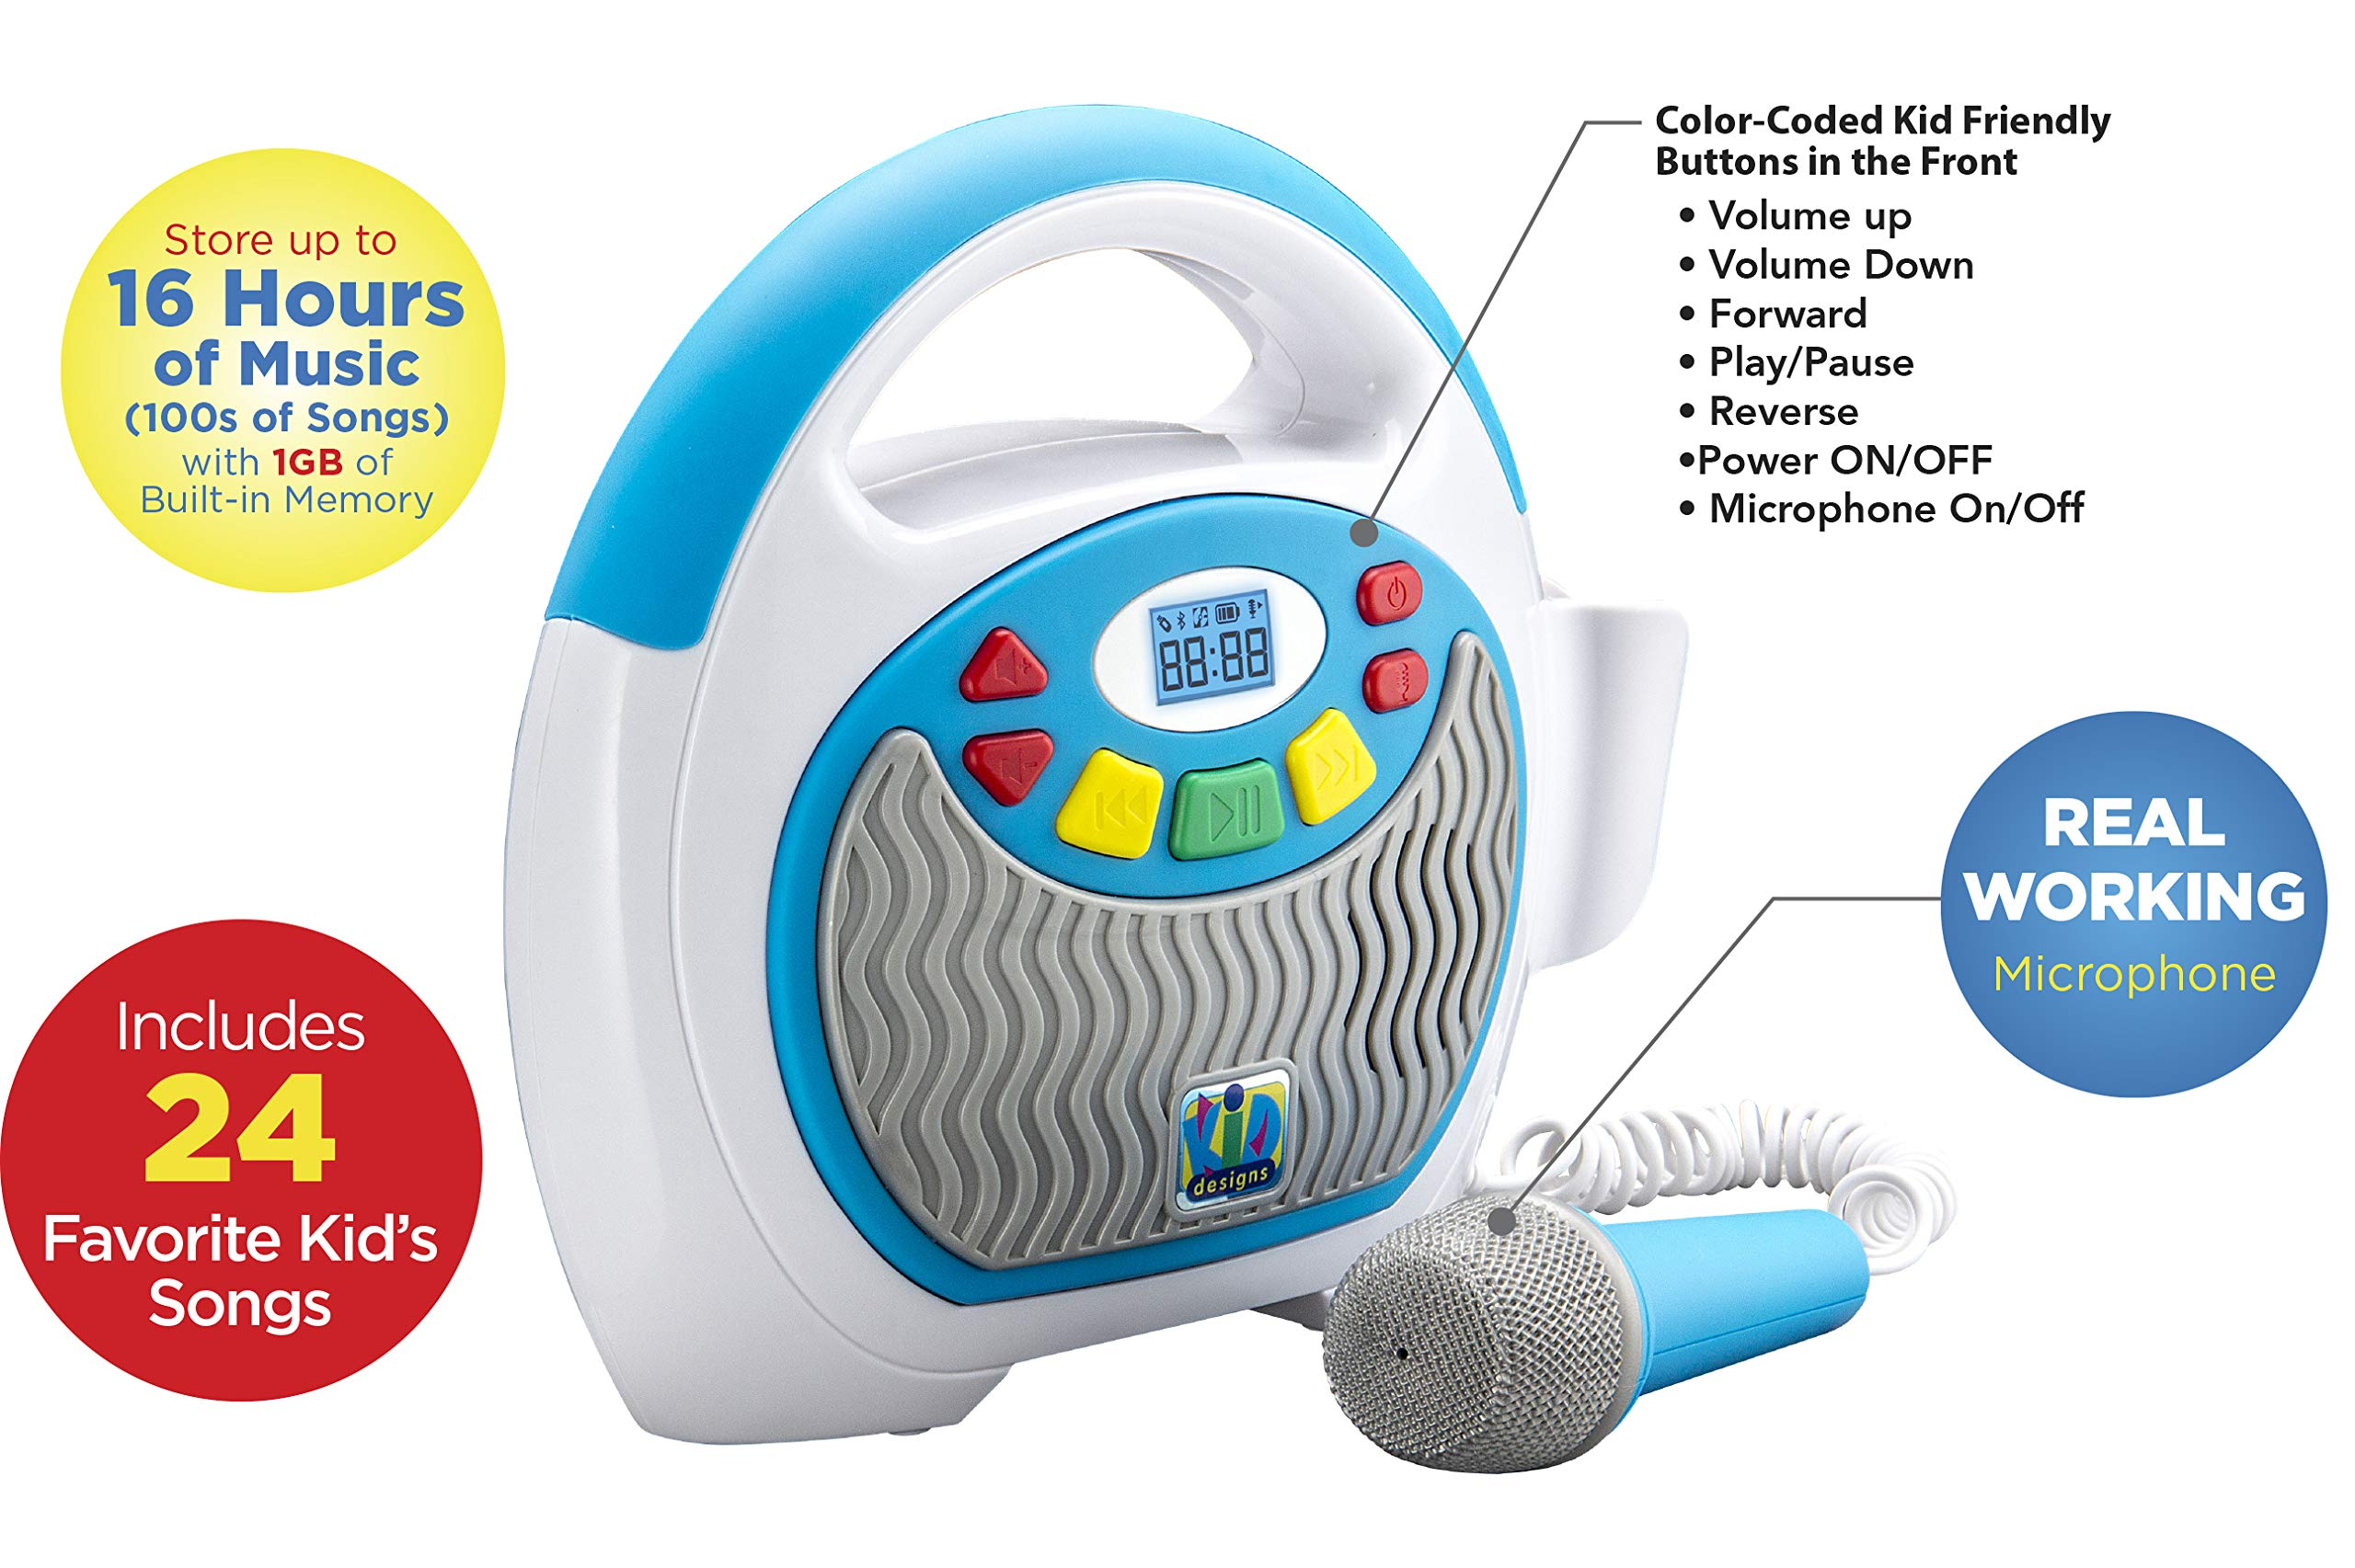 Mother Goose Club Bluetooth Sing Along Portable MP3 Player Real Mic 24 Songs Built In Stores Up To 16 Hours of Music 1 GB Built In Memory USB Port Expands Your Content Built In Rechargeable Batteries